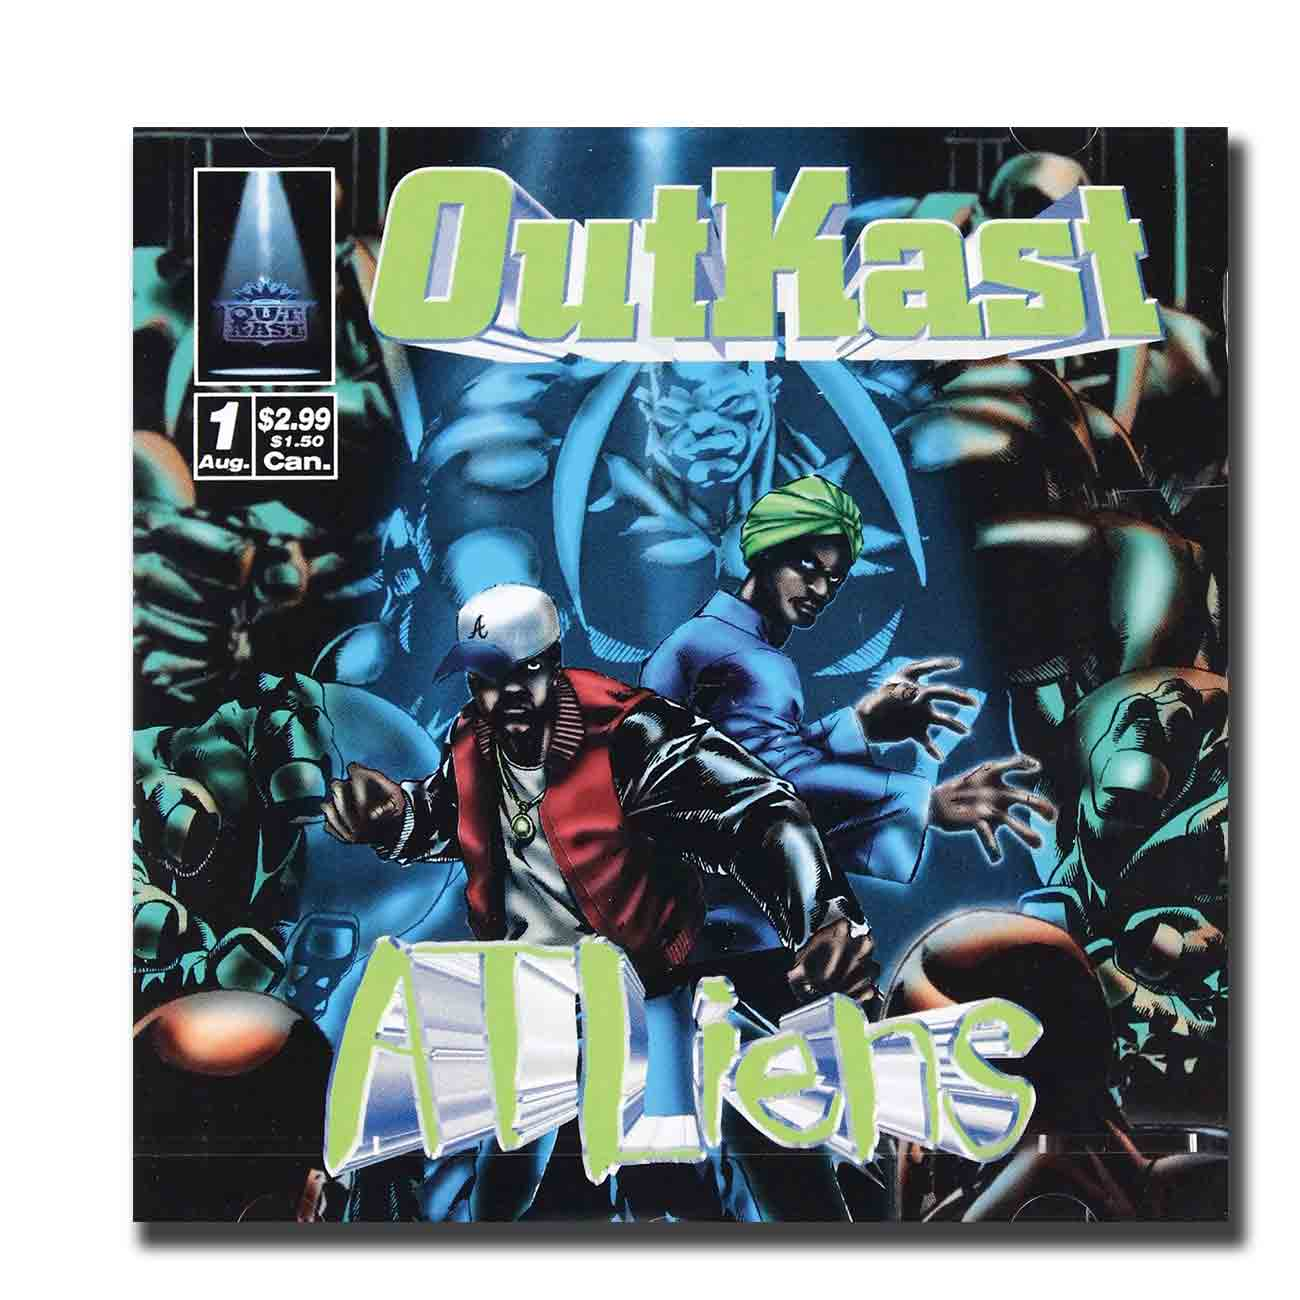 Music Album Hip Hop Outkast custom12x12 24x24 27x27Art silk Poster Wall Canvas Print Modern Wall Decoration image